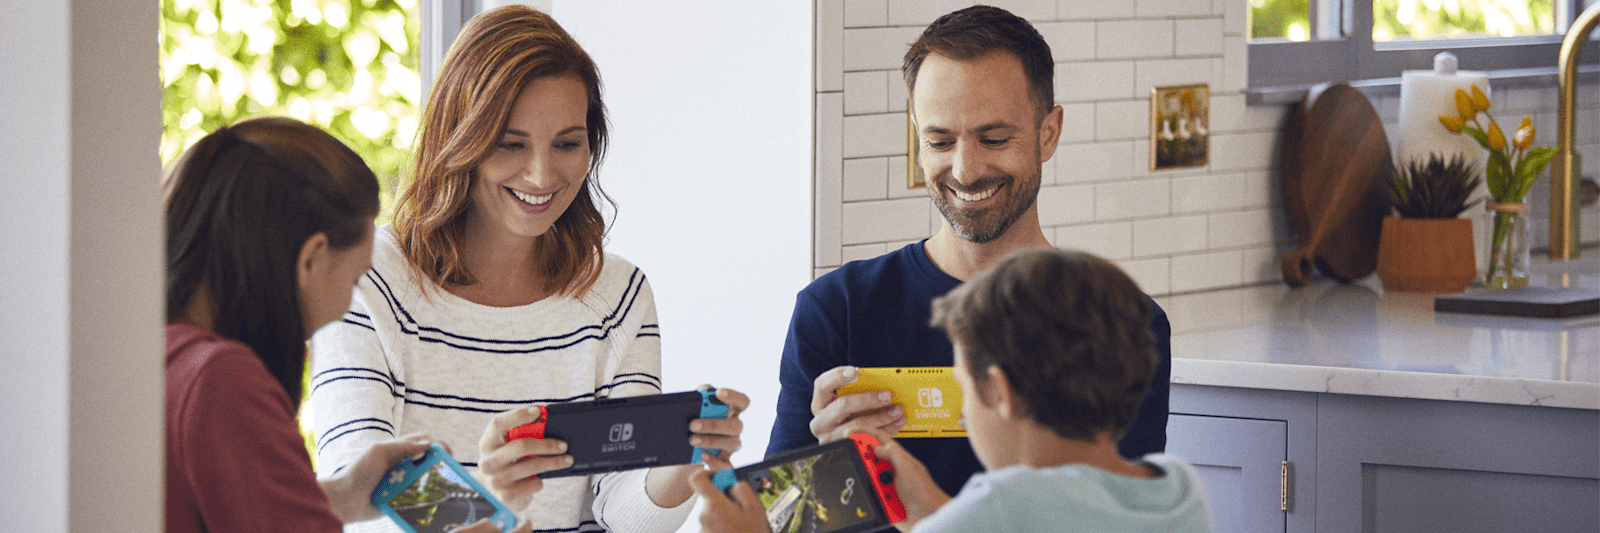 Family playing Nintendo Switch consoles together